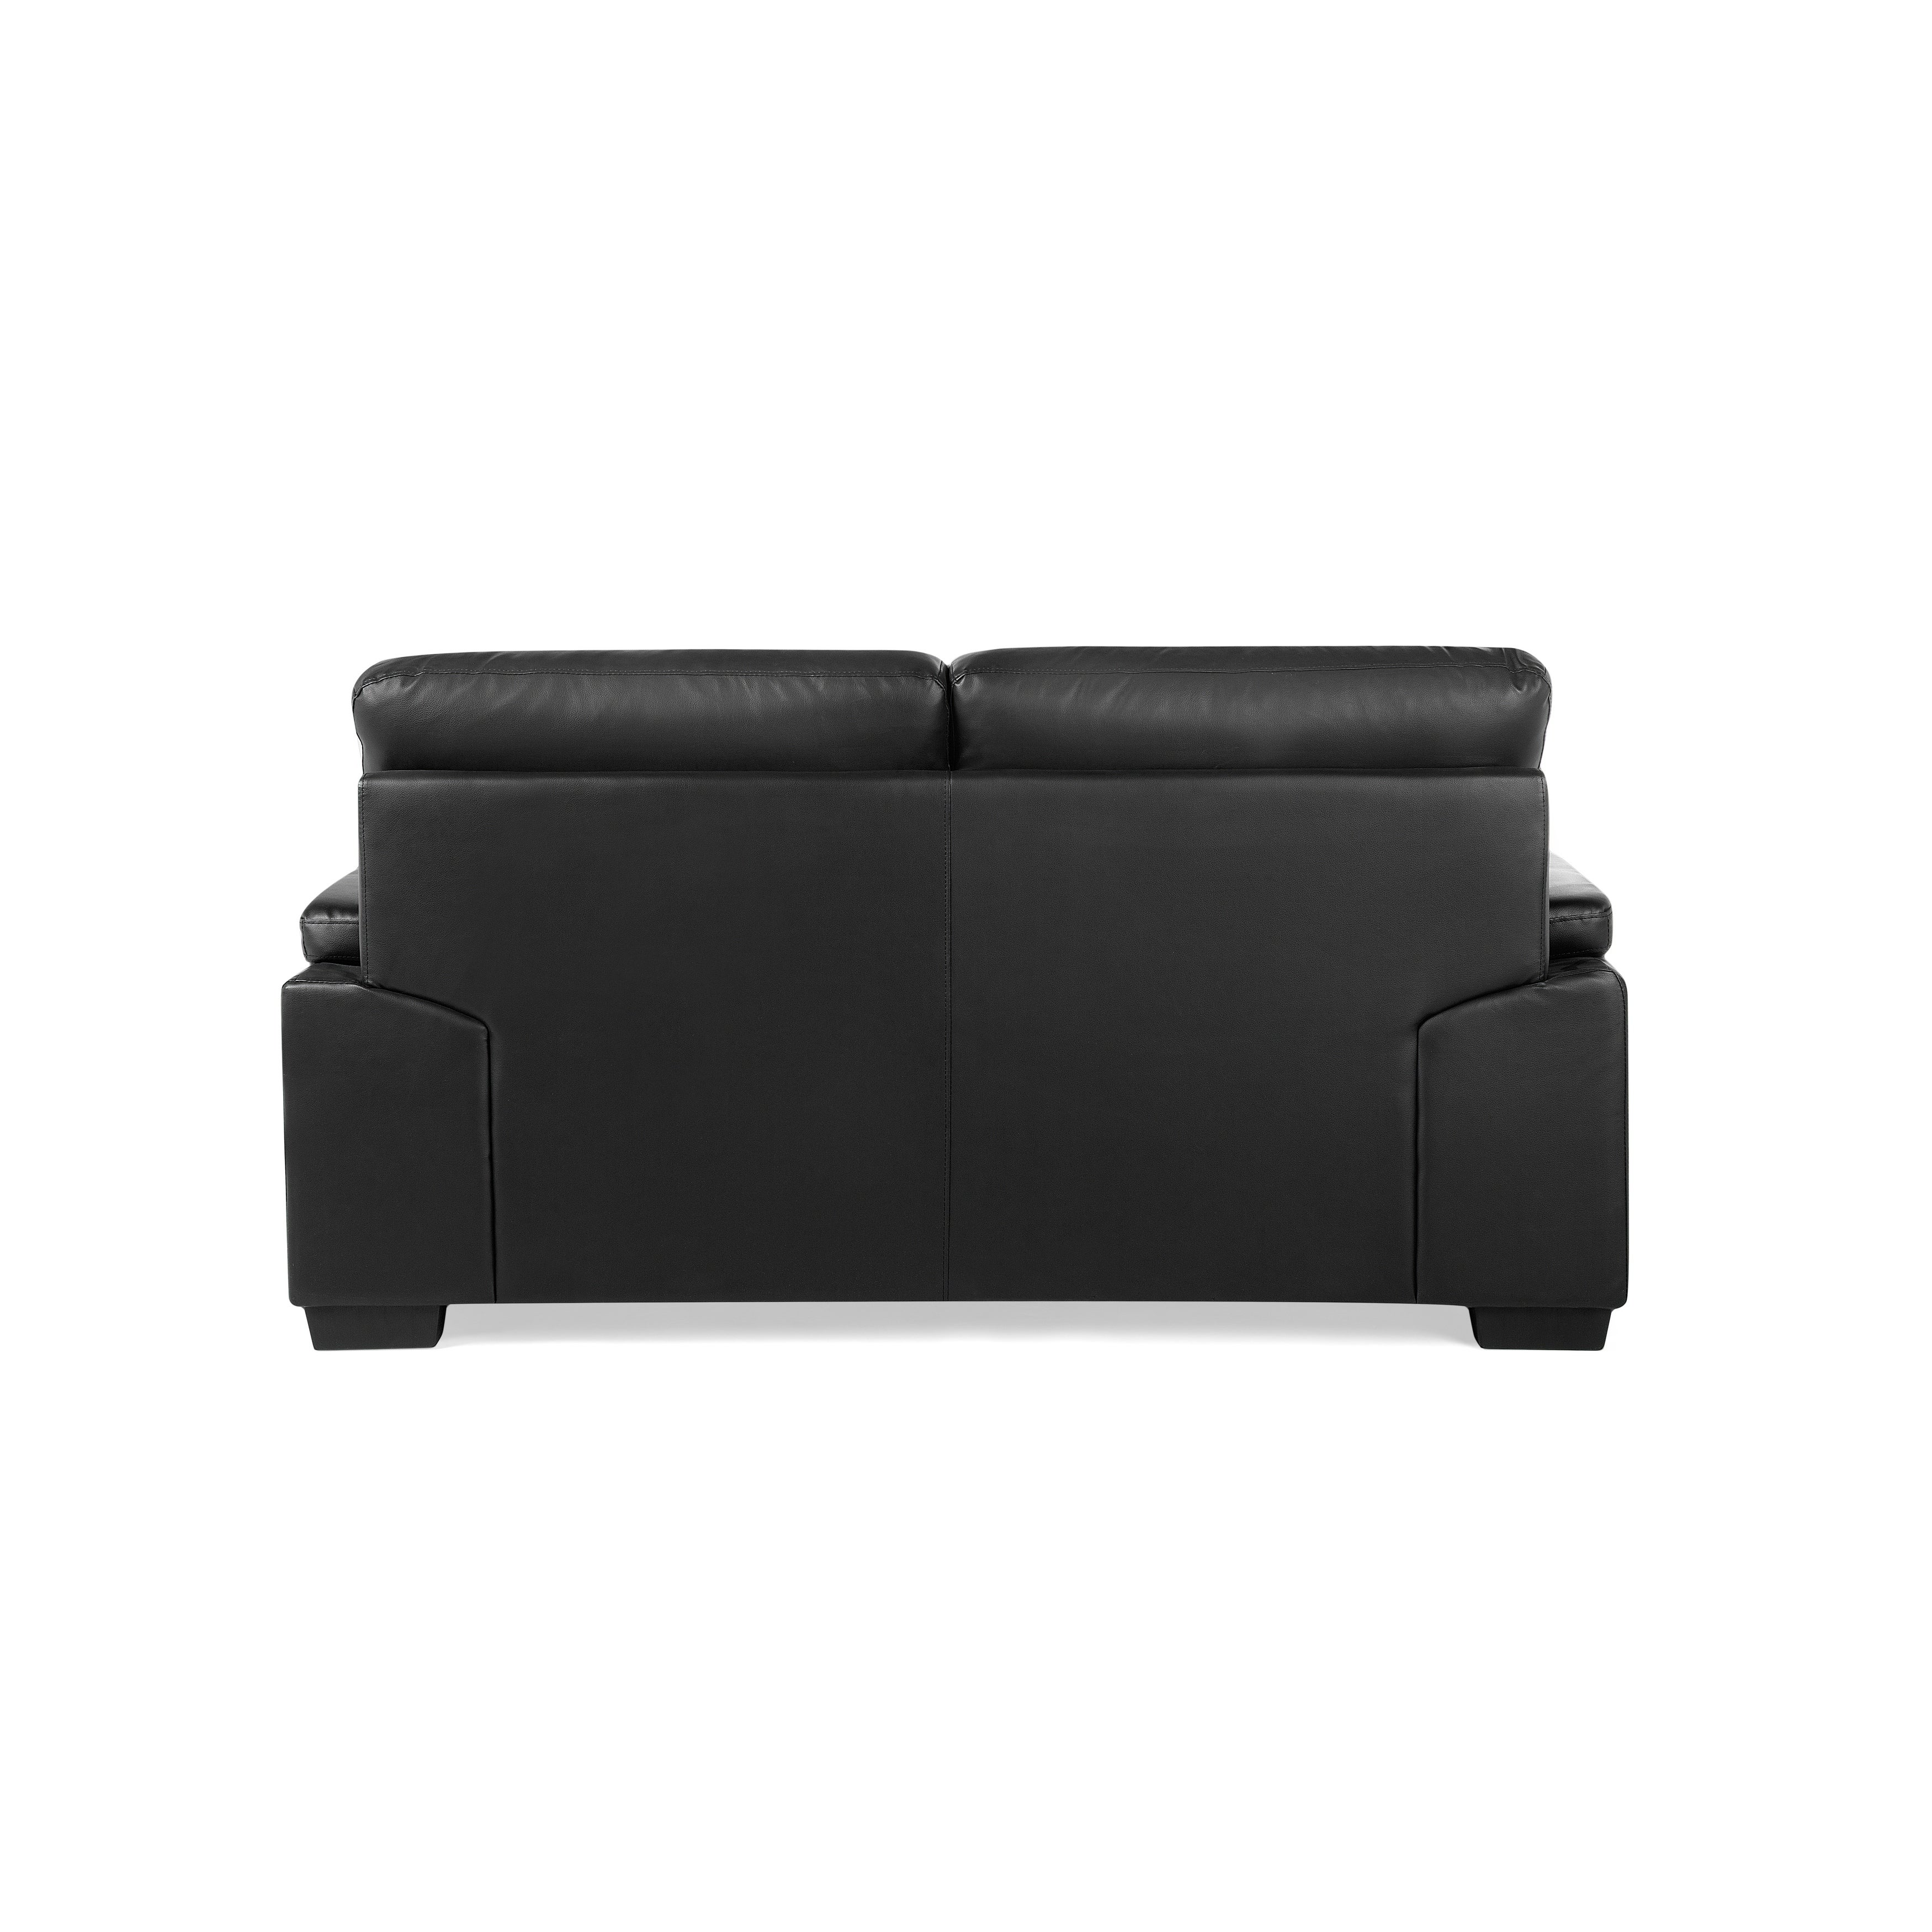 Shop Classic 2 Seater Leather Sofa - Black VOGAR - Free Shipping ...